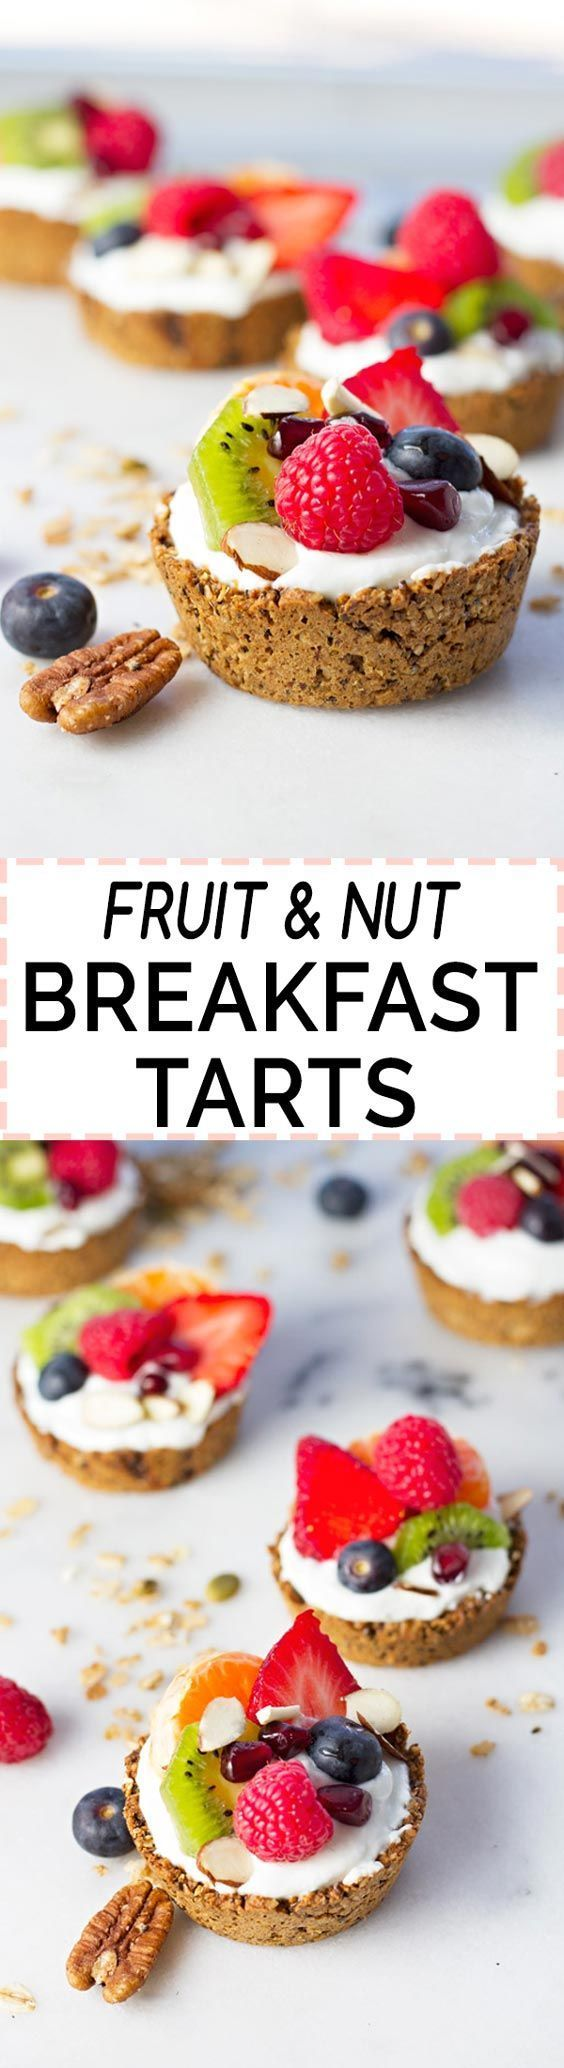 Fruit & Nut Breakfast Tarts! Healthy, easy to make, and perfect to take on-the-go :)